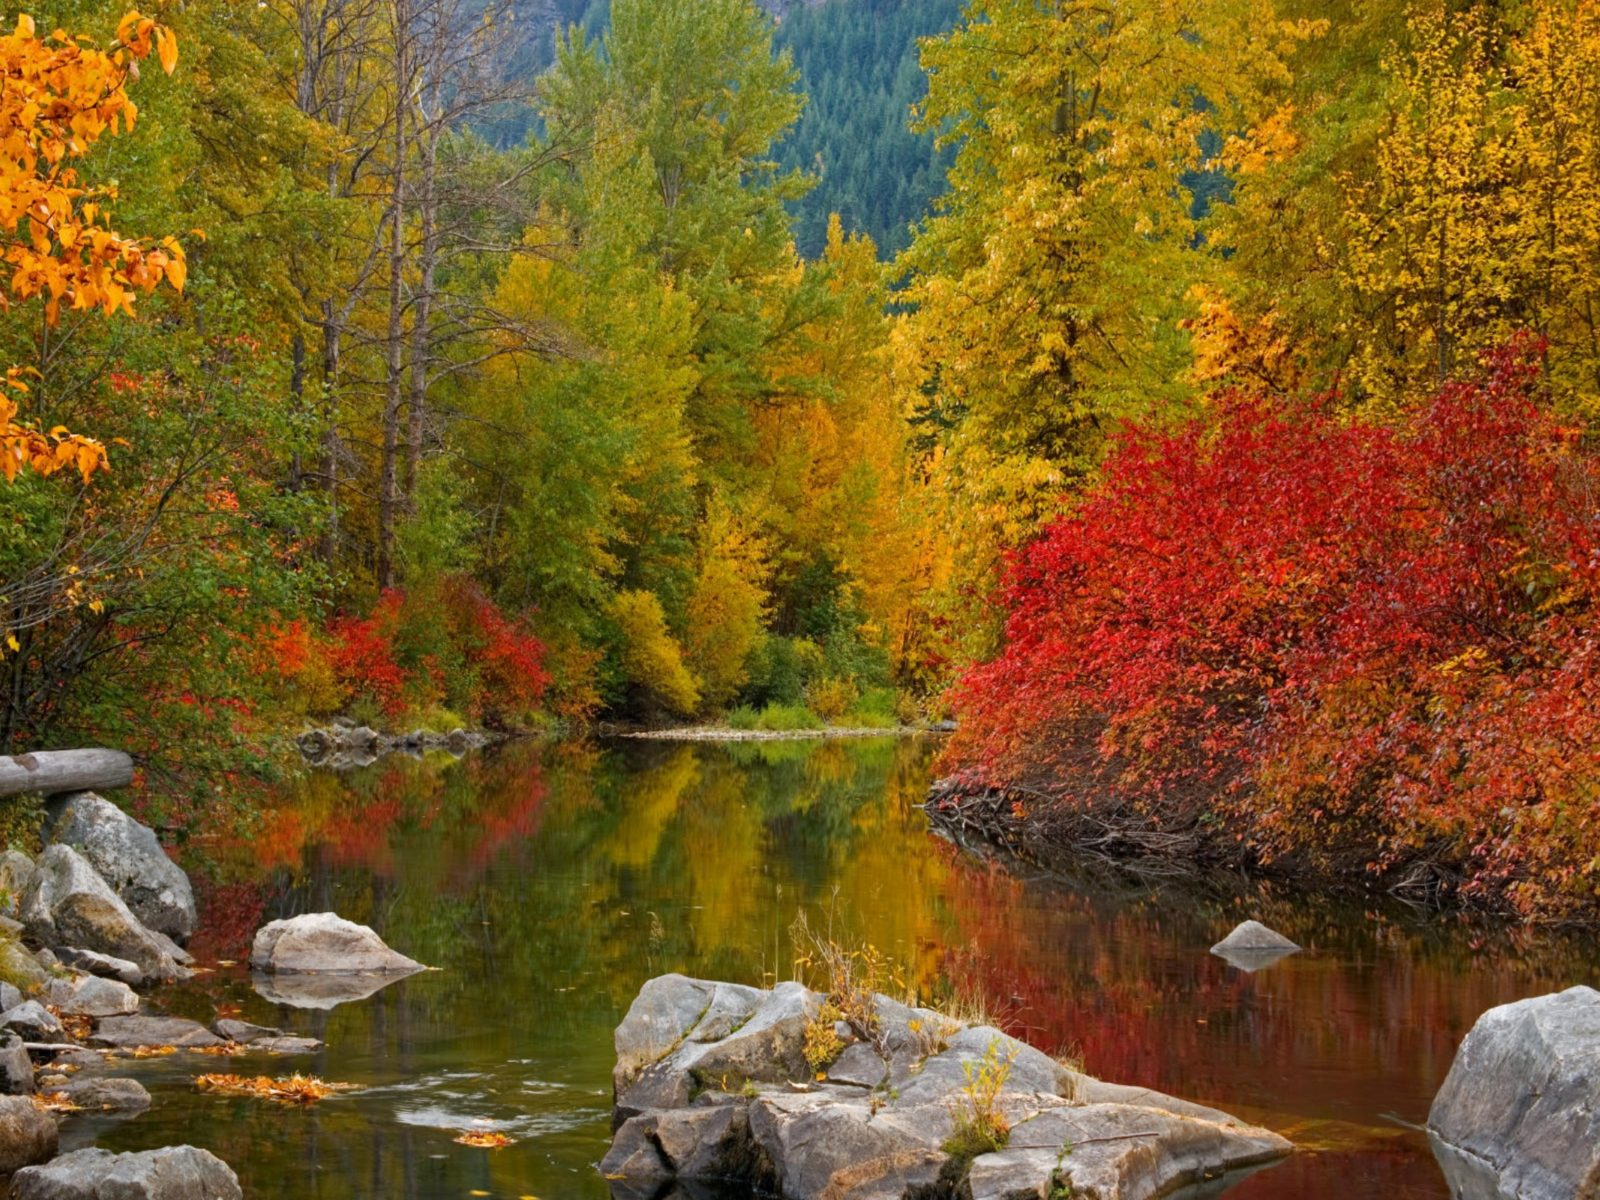 Fall Wallpaper For Computer Desktop Fall Awesome Forest River Water Widescreen 2560x1600 Hd